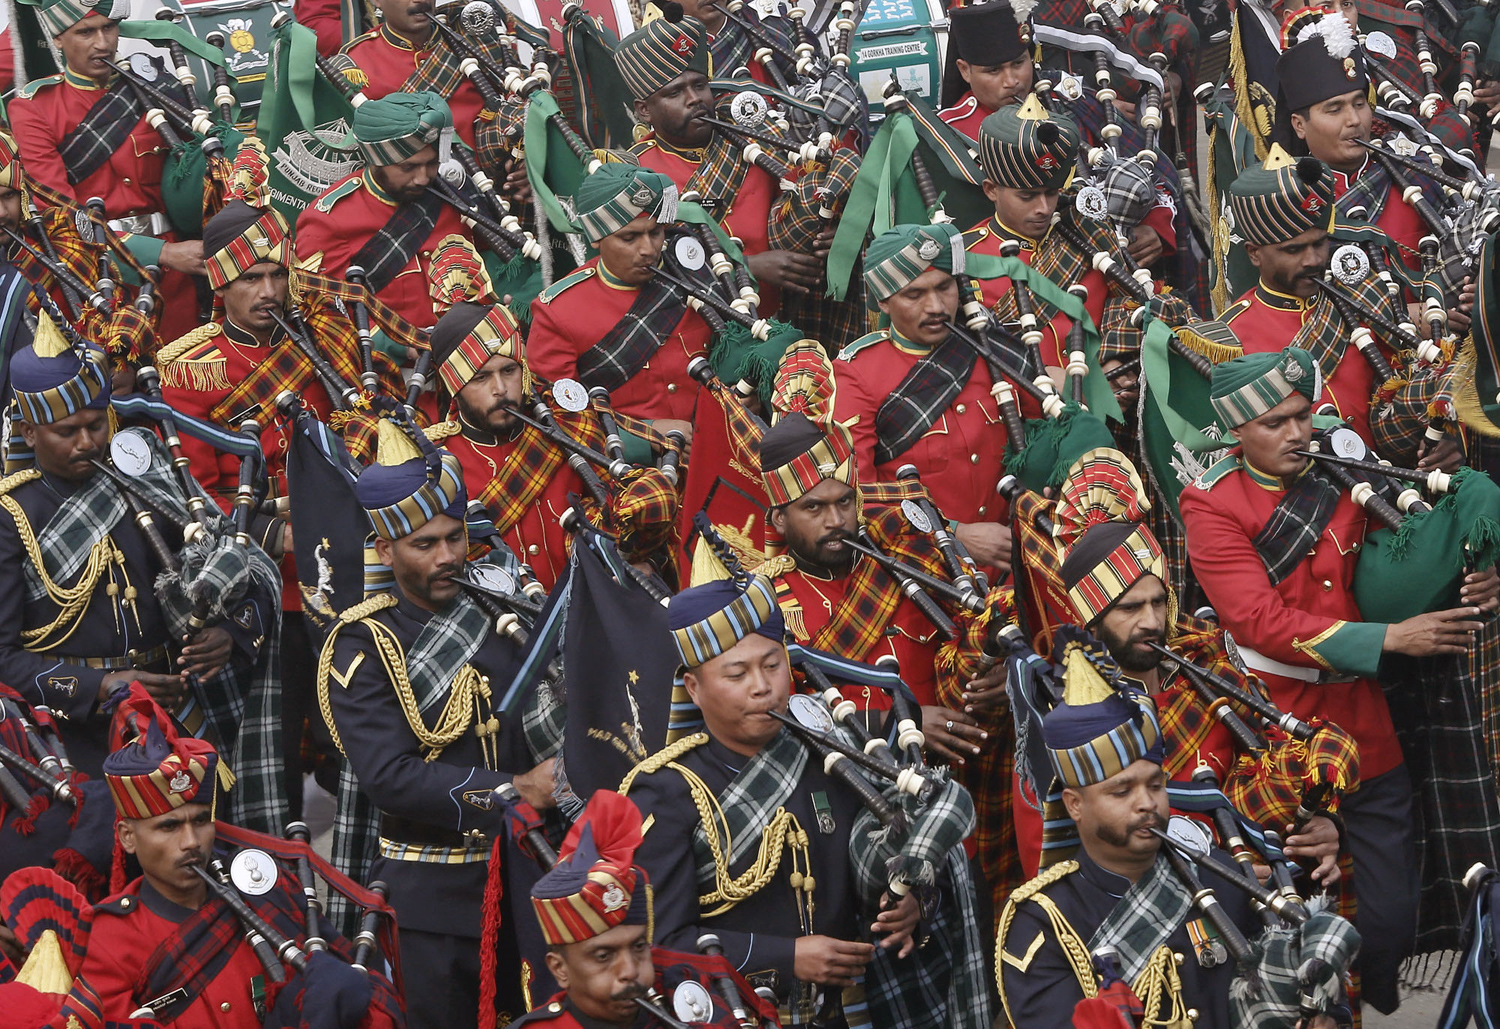 Members of Indian military band take part in the Republic Day parade in New Delhi